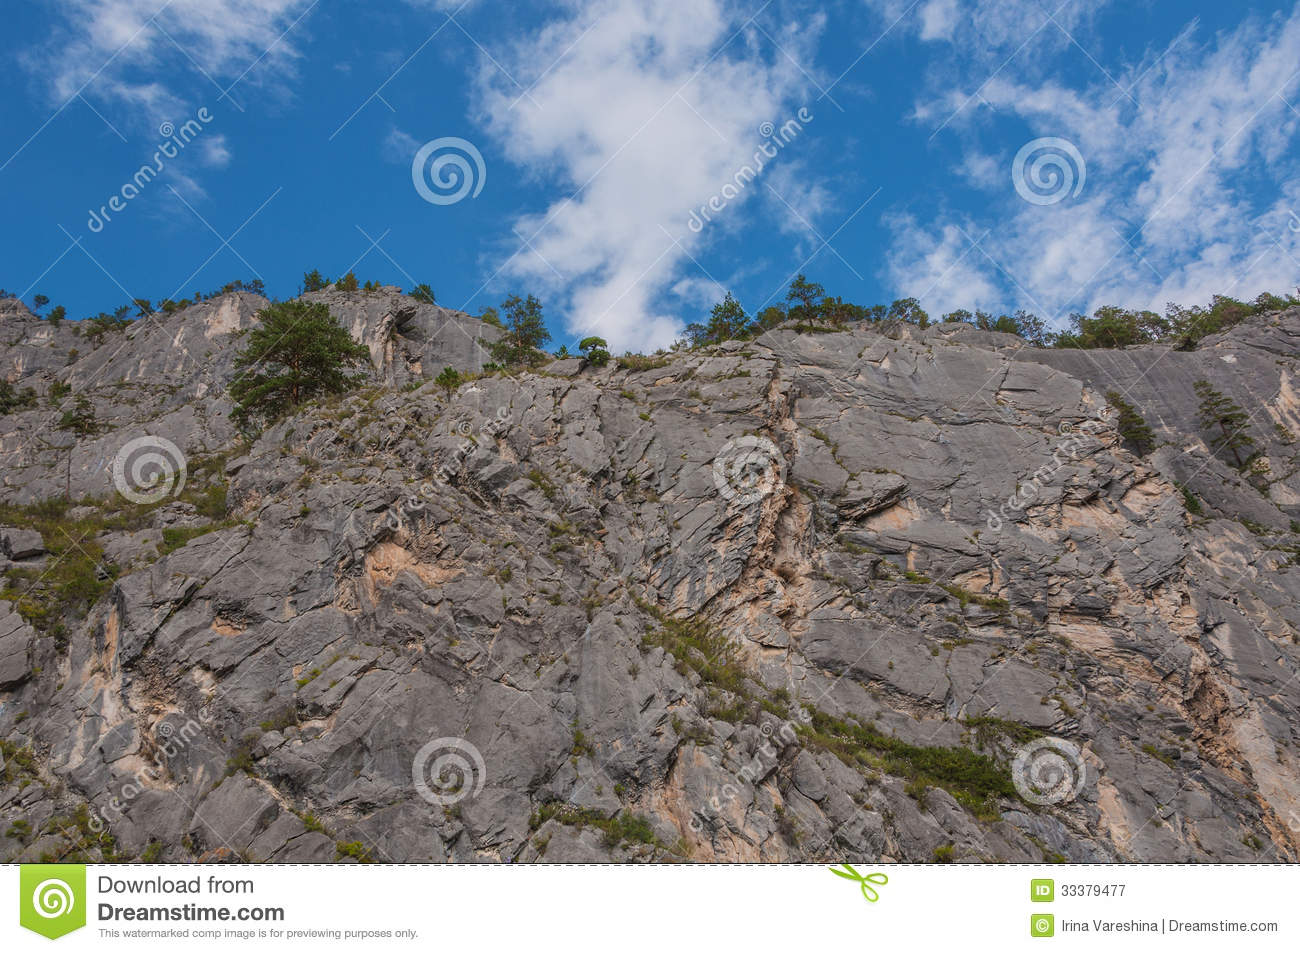 Steep Cliffs Trees Top Rocks Royalty Free Stock Photography   Image